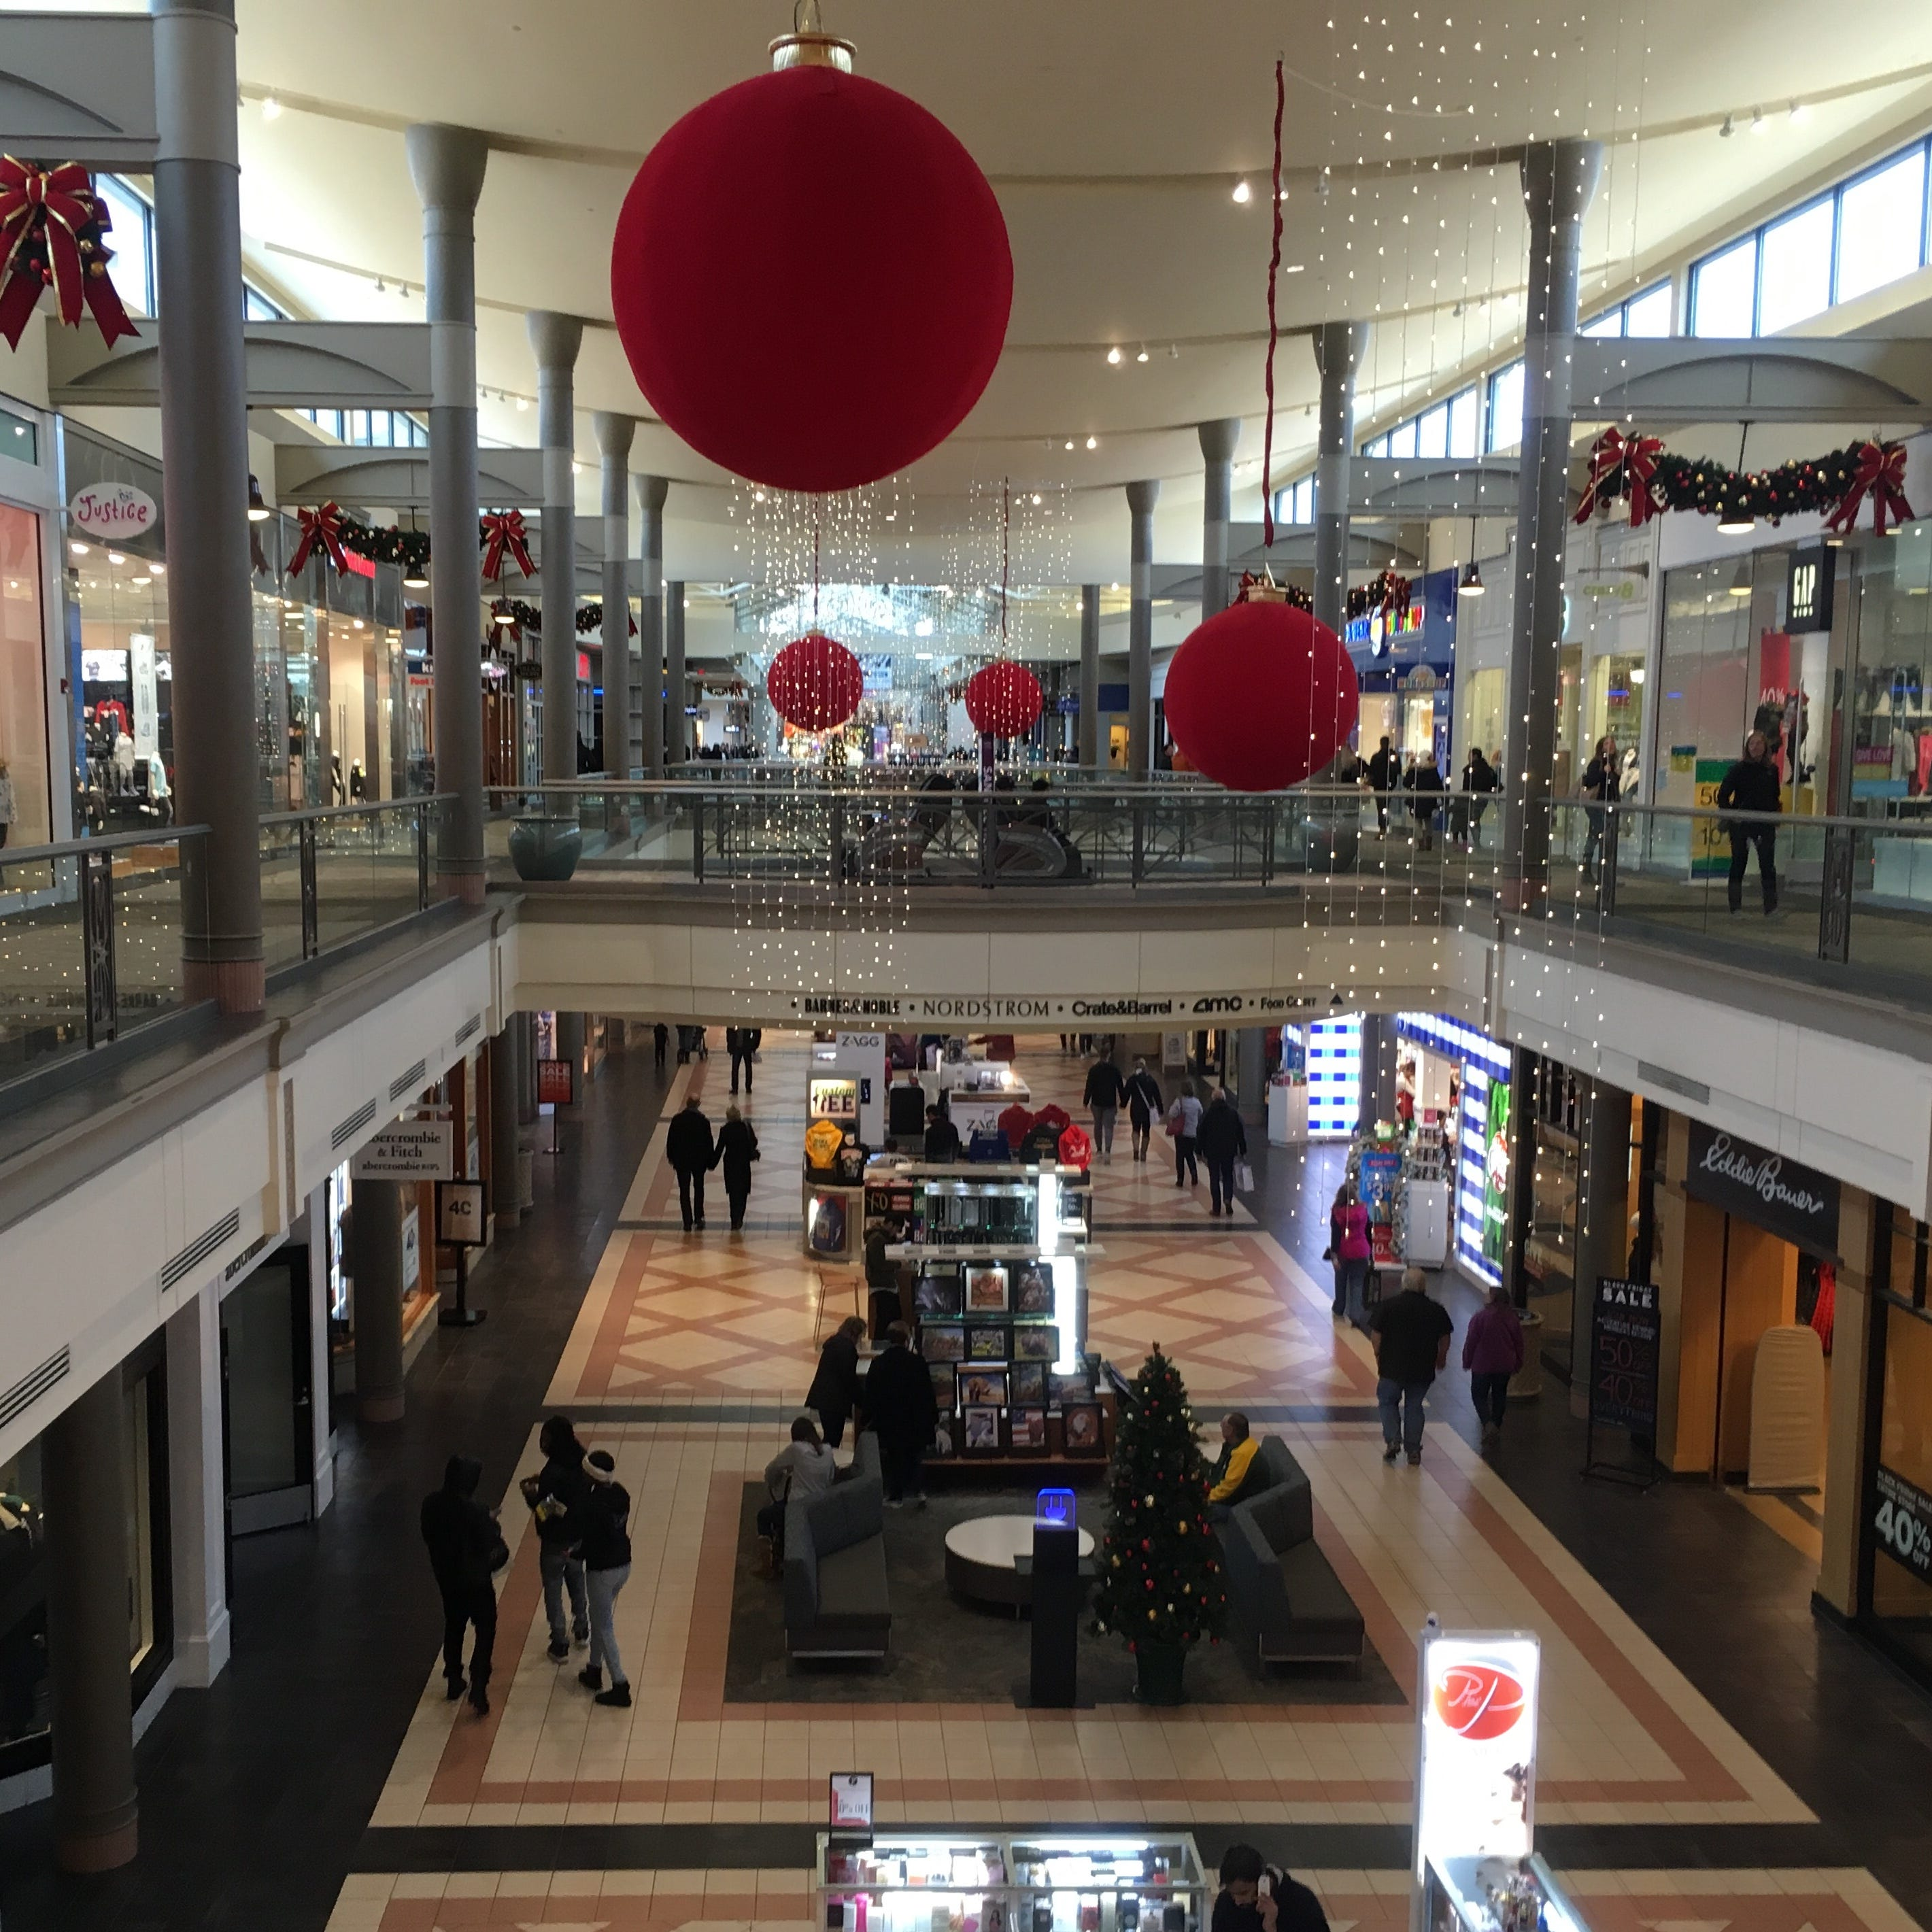 Mayfair mall, decorated for the holidays, will open at 6 p.m. Thanksgiving. More than half of the mall's stores are expected to be open for business that night.